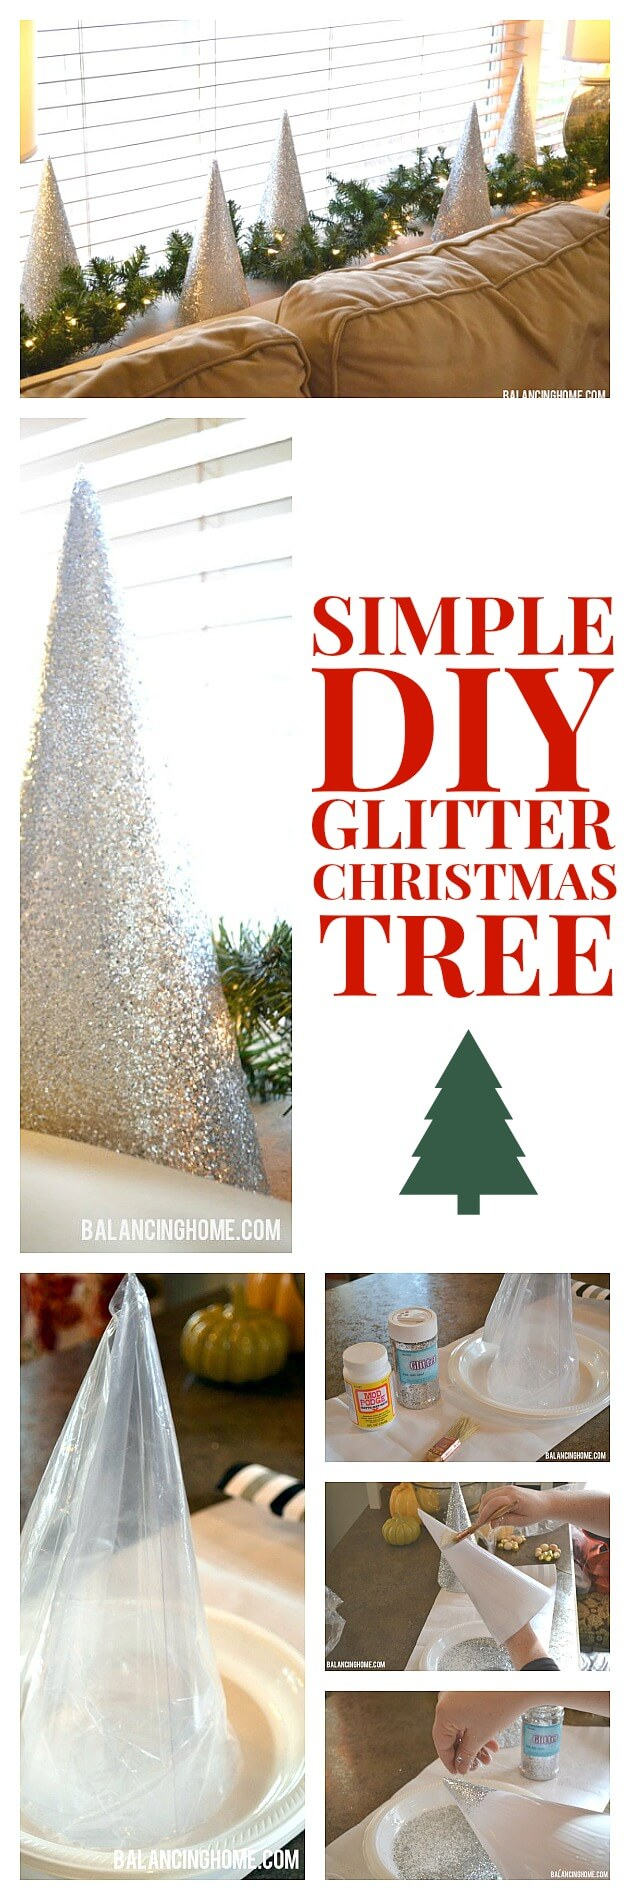 Quick and Cute Glitter Christmas Tree